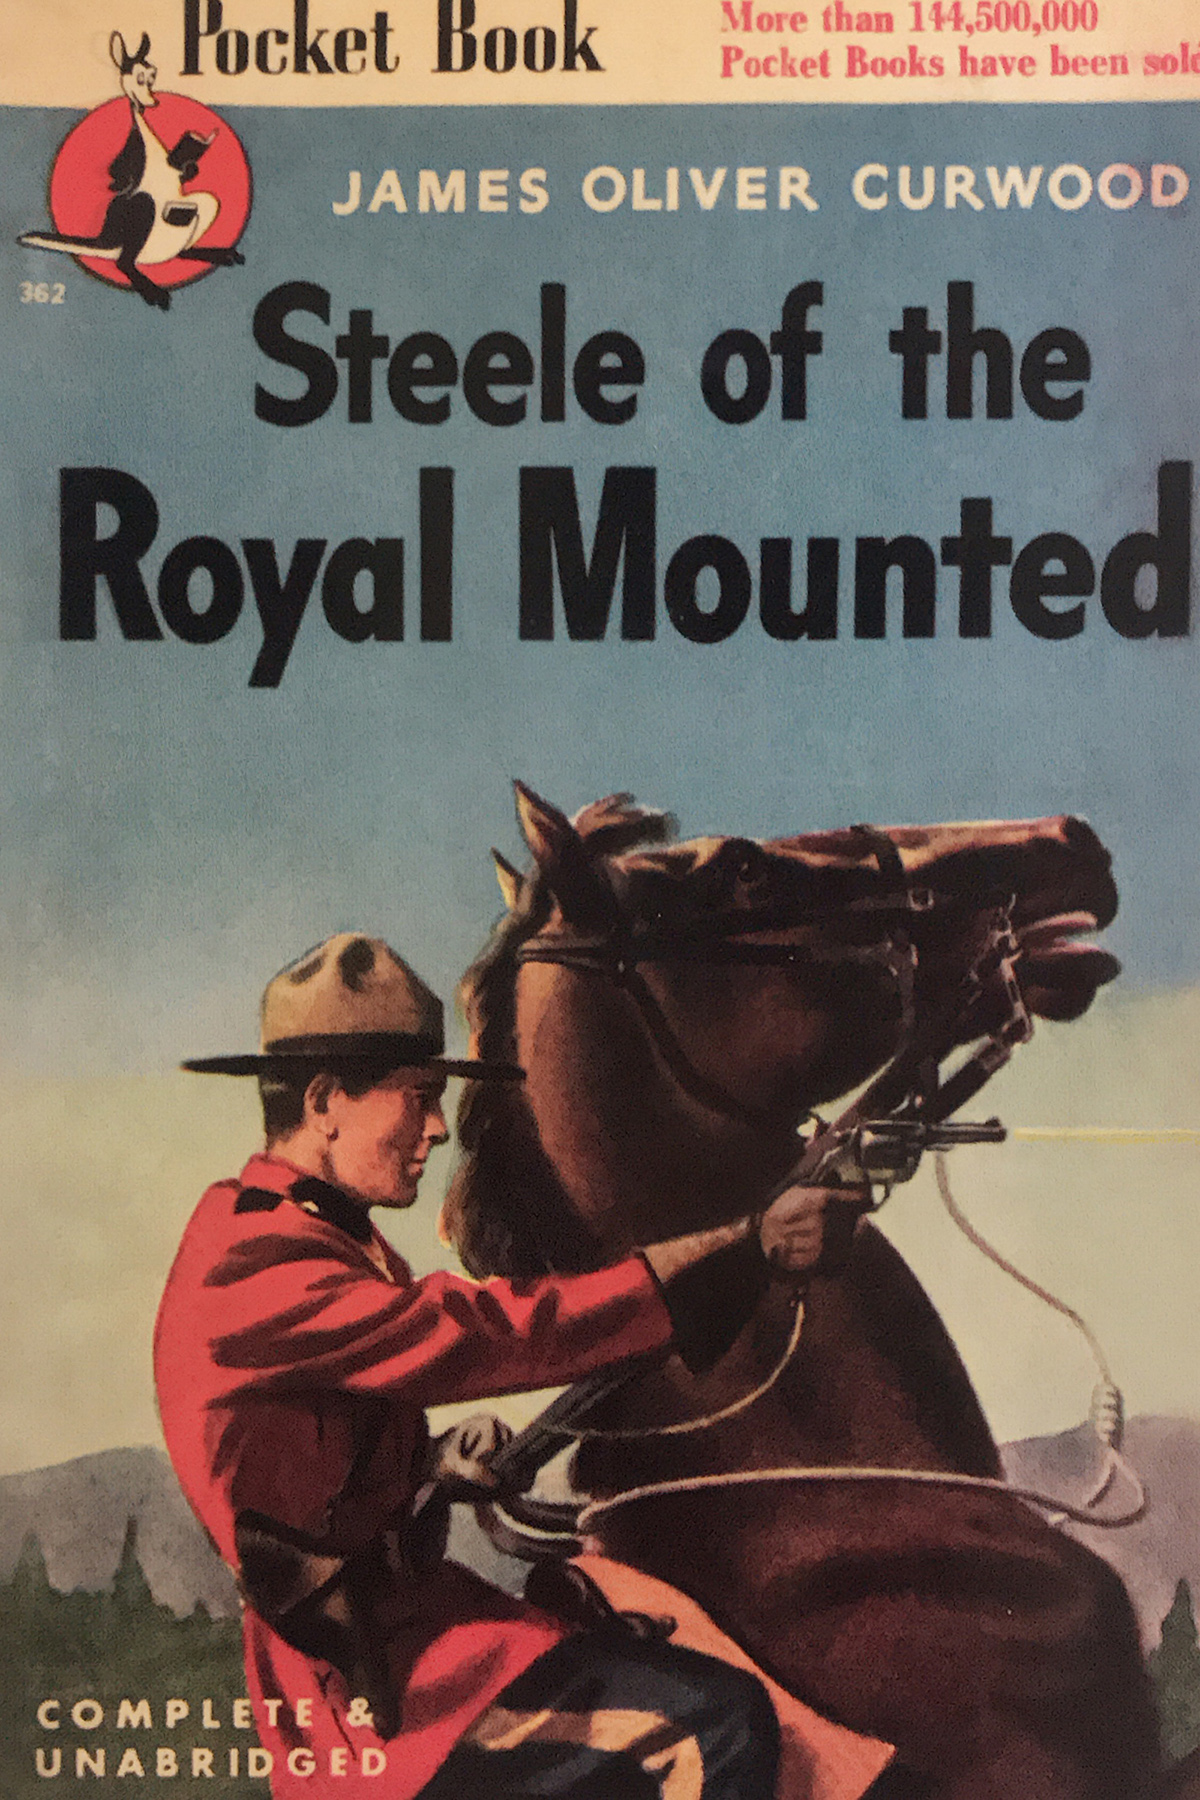 Steele of the Royal Mounted by James Oliver Curwood - book cover